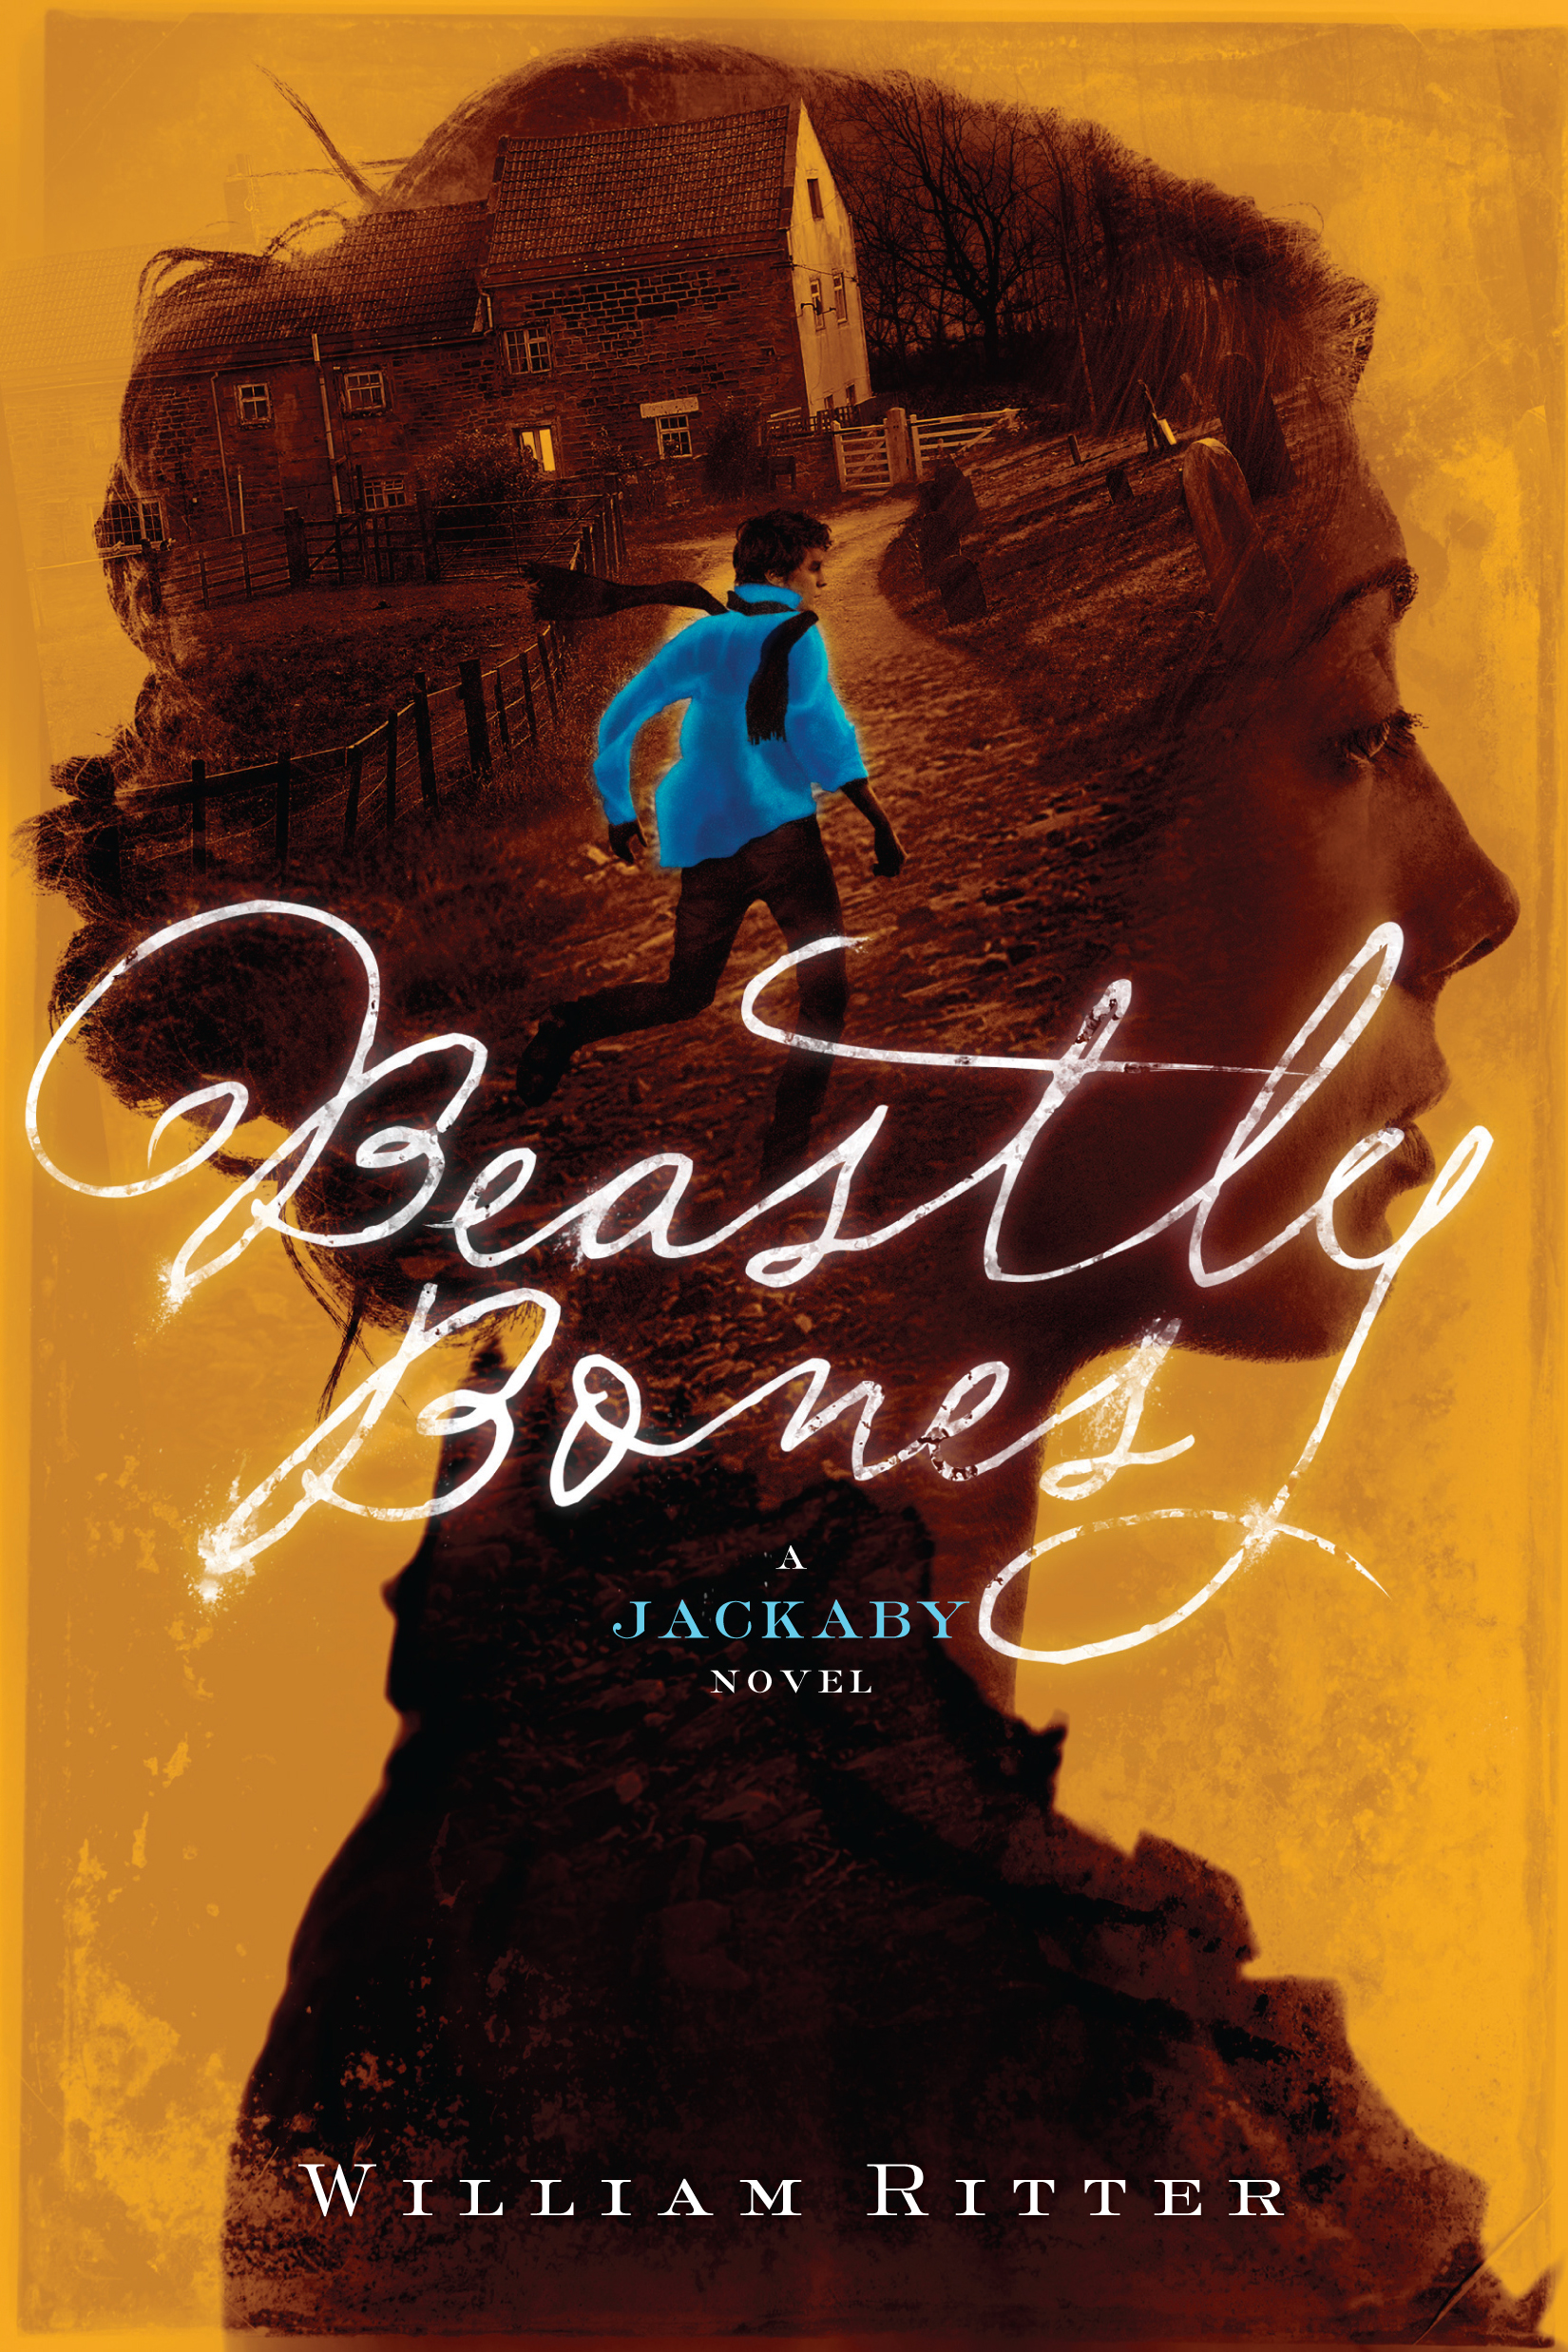 Review – Beastly Bones by William Ritter